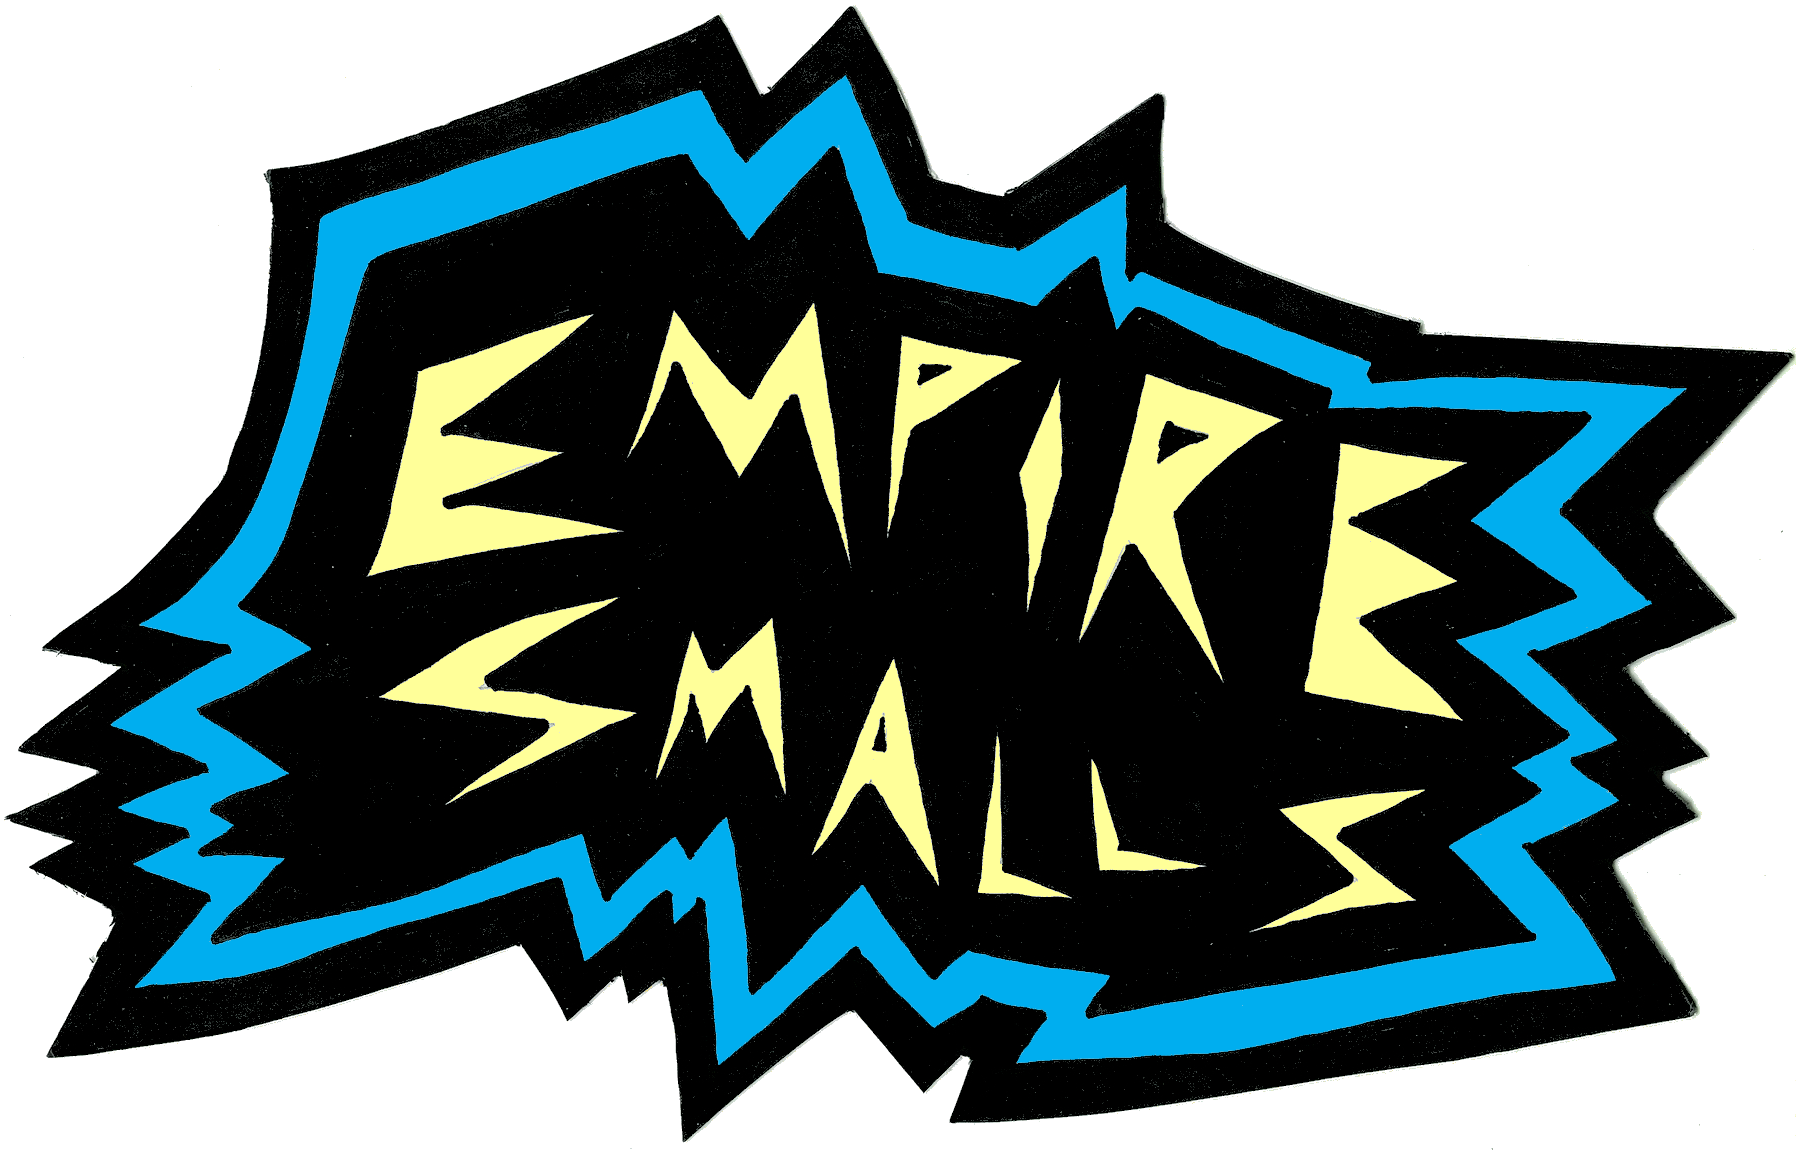 Empire Smalls